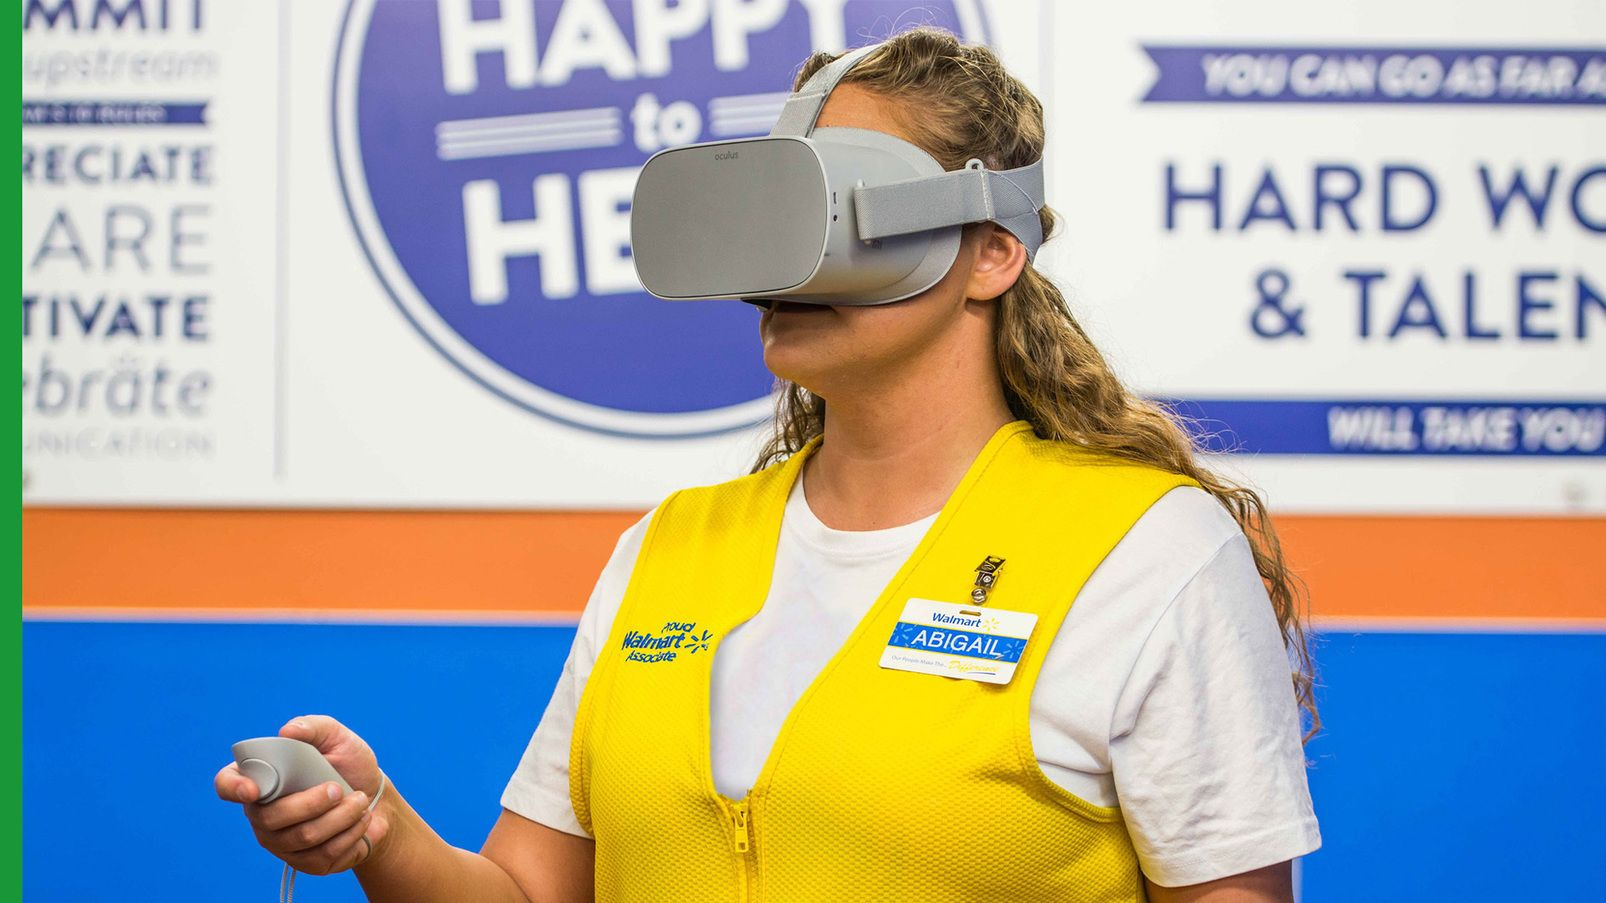 Walmart to Launch Nationwide VR Training Program with